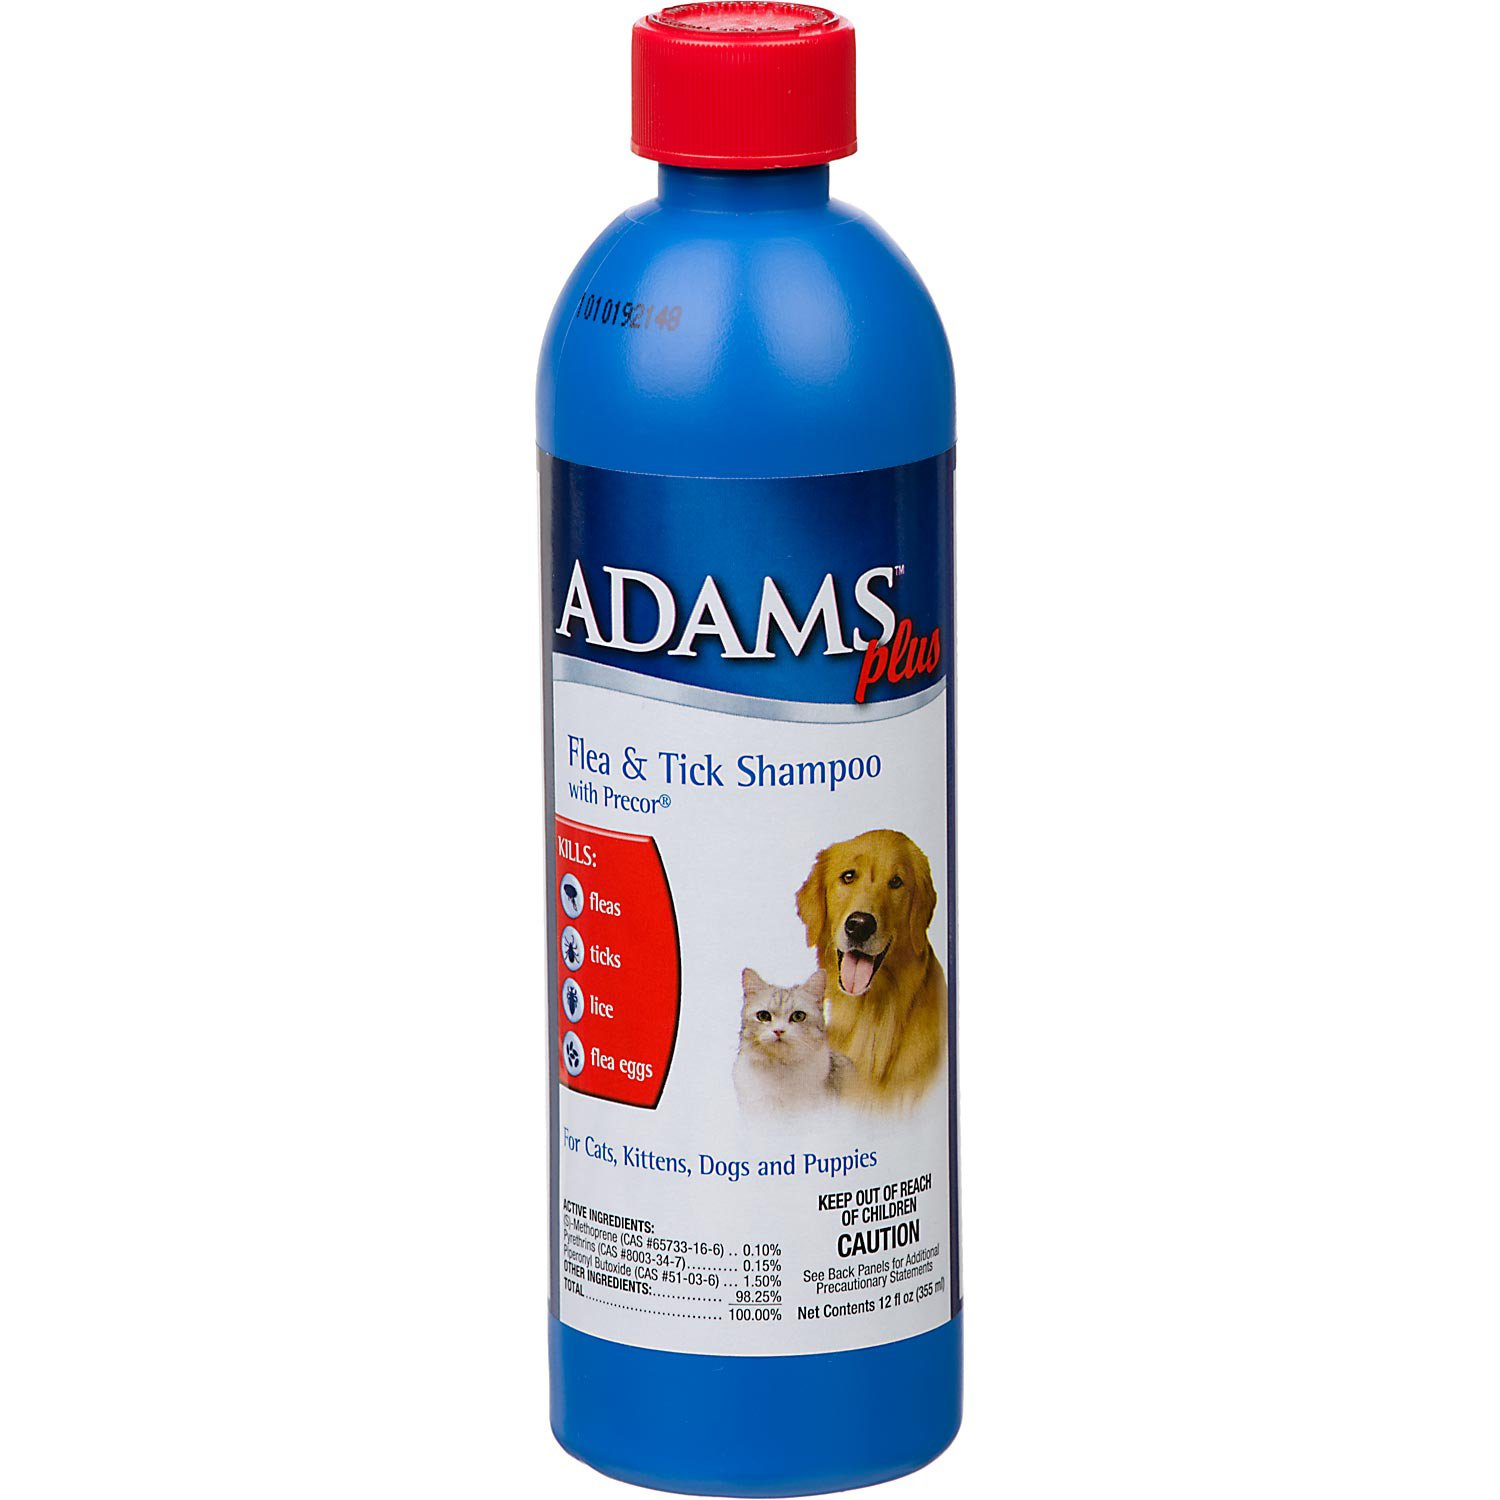 Adams Plus Flea Amp Tick Shampoo With Precor For Dogs And